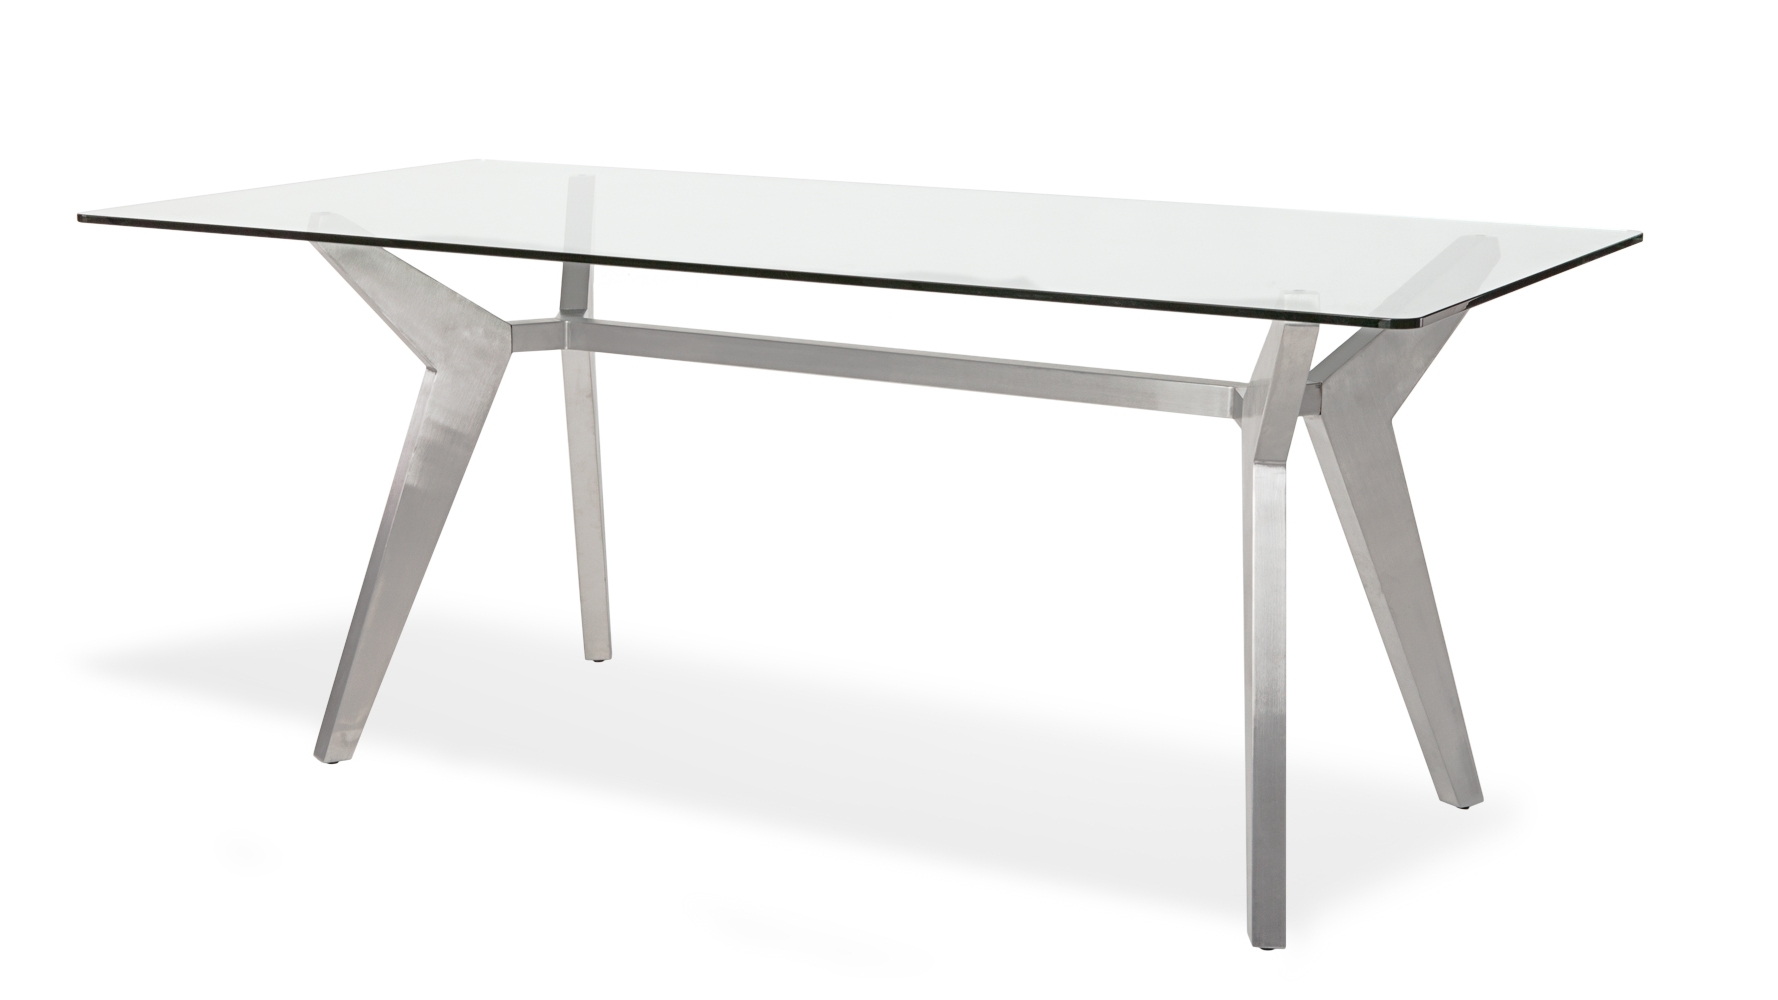 Brushed Steel Dining Tables With Regard To 2017 Argo Glass Dining Table With Brushed Metal Base (Gallery 1 of 25)